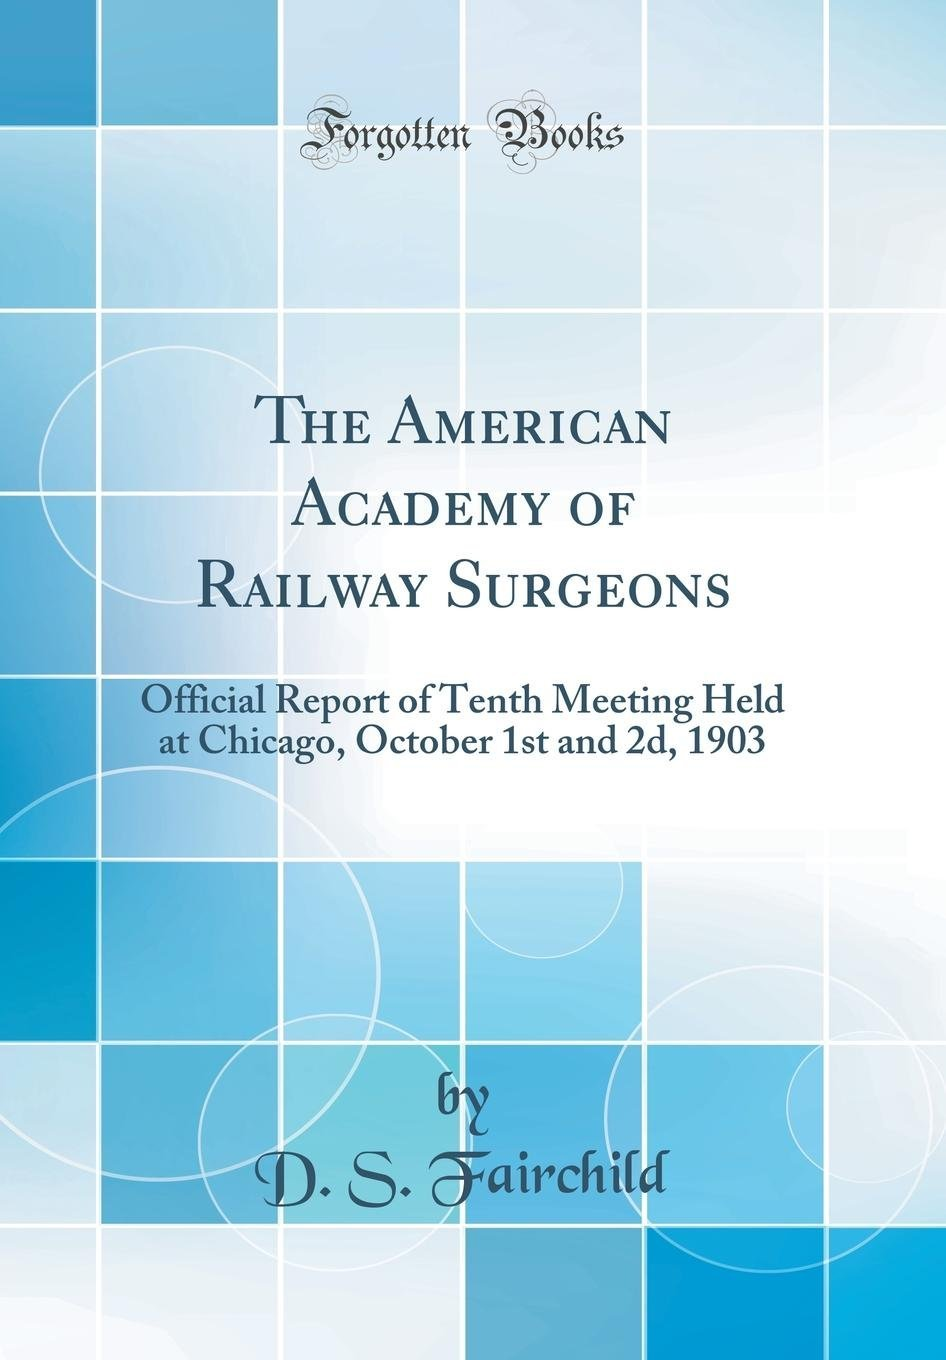 Download The American Academy of Railway Surgeons: Official Report of Tenth Meeting Held at Chicago, October 1st and 2d, 1903 (Classic Reprint) ebook